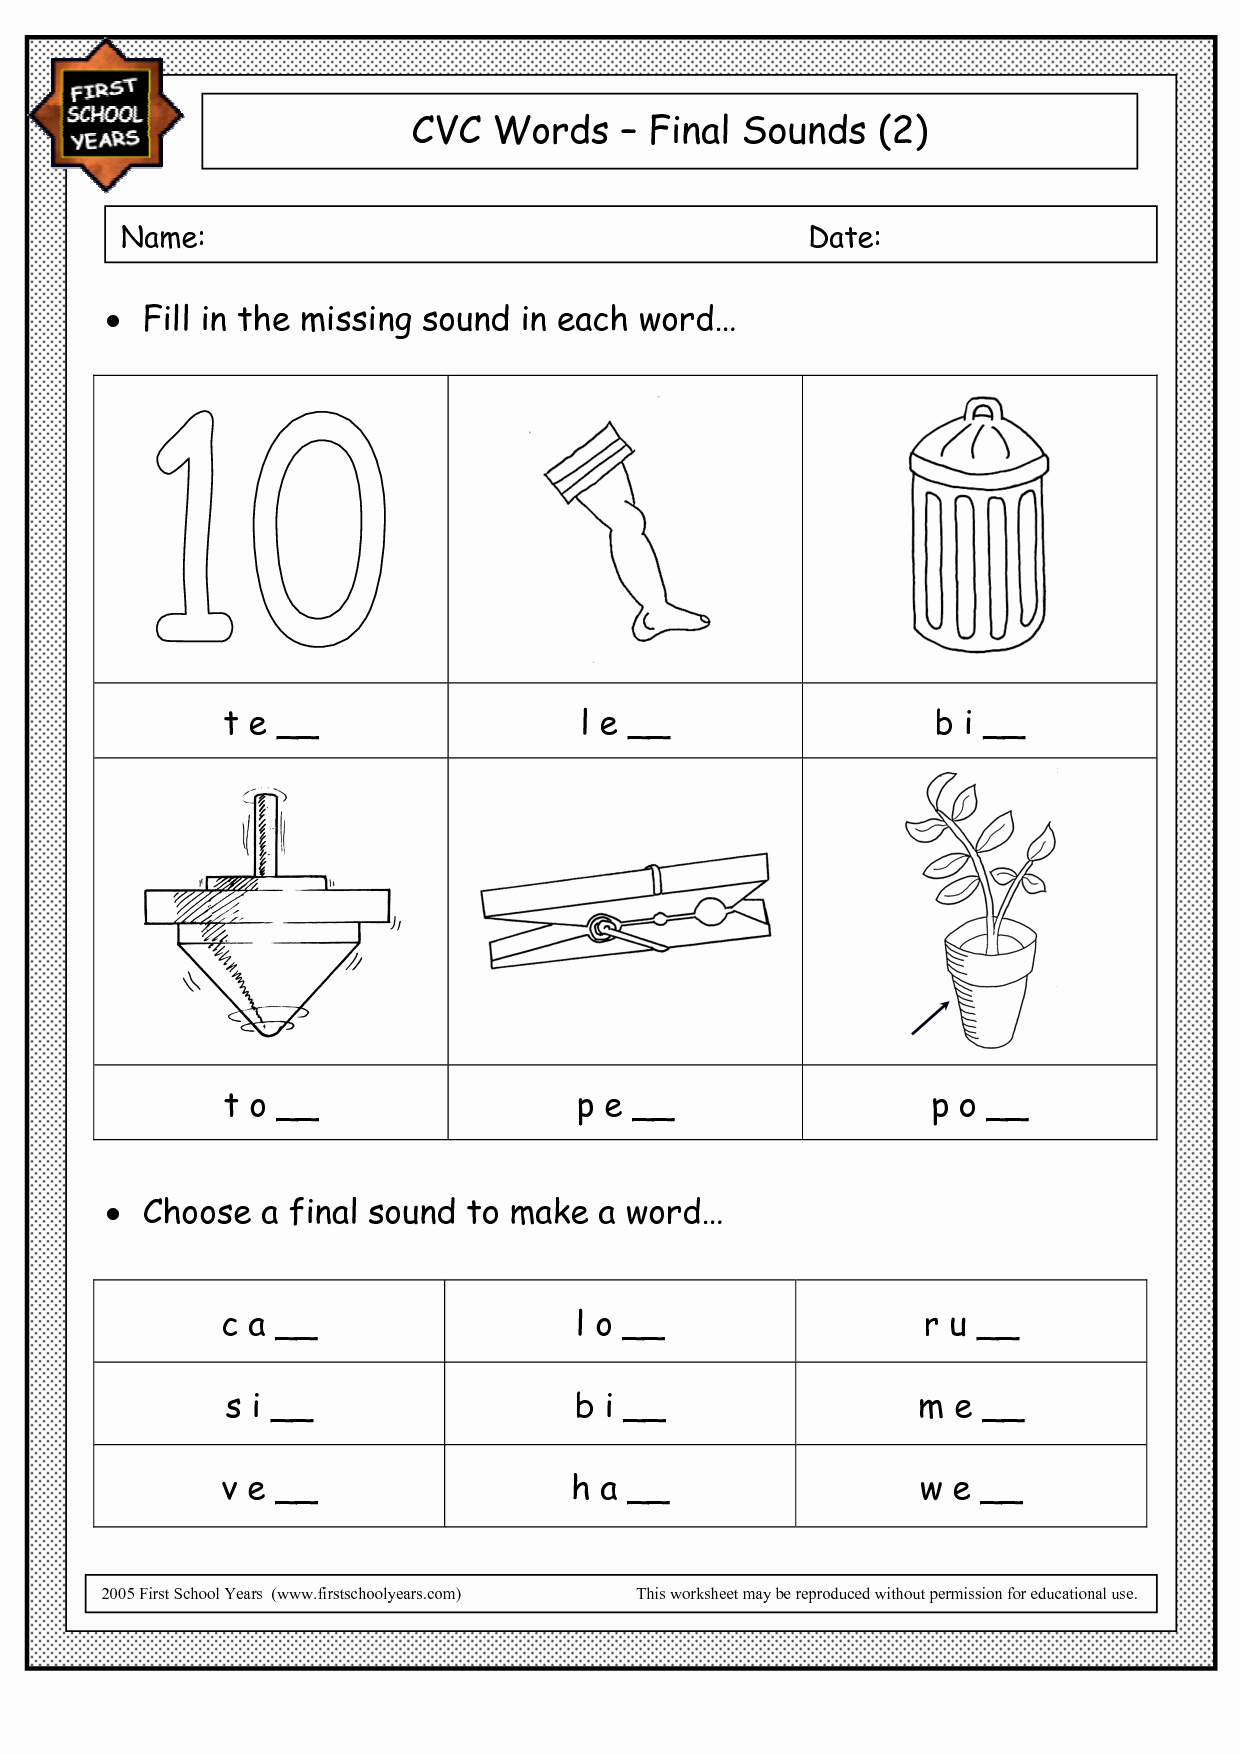 Ending sound Worksheets Free Fresh Ending sound Worksheet